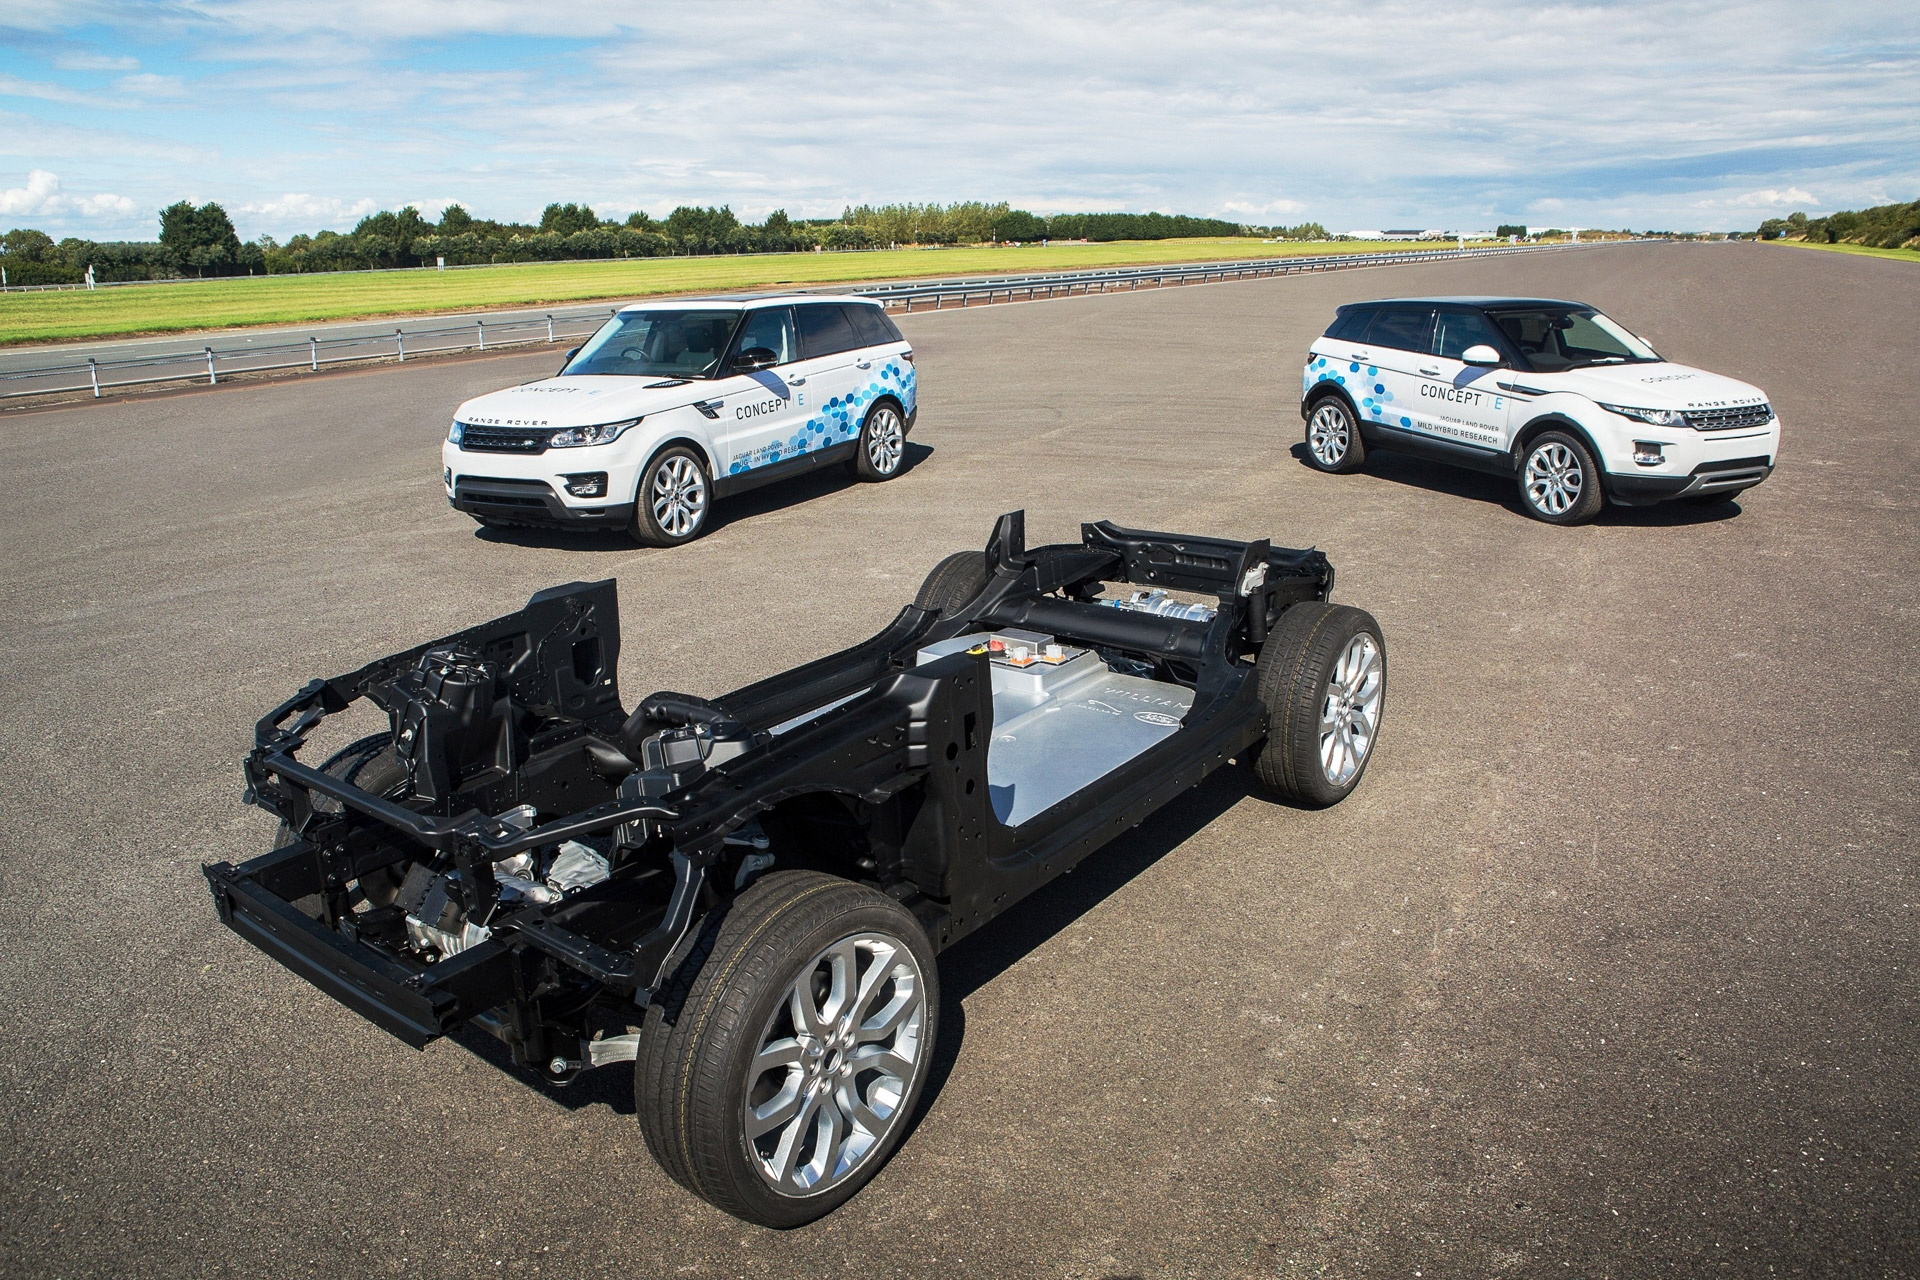 Jaguar Land Rover Previews Future Tech Including New Electric Car